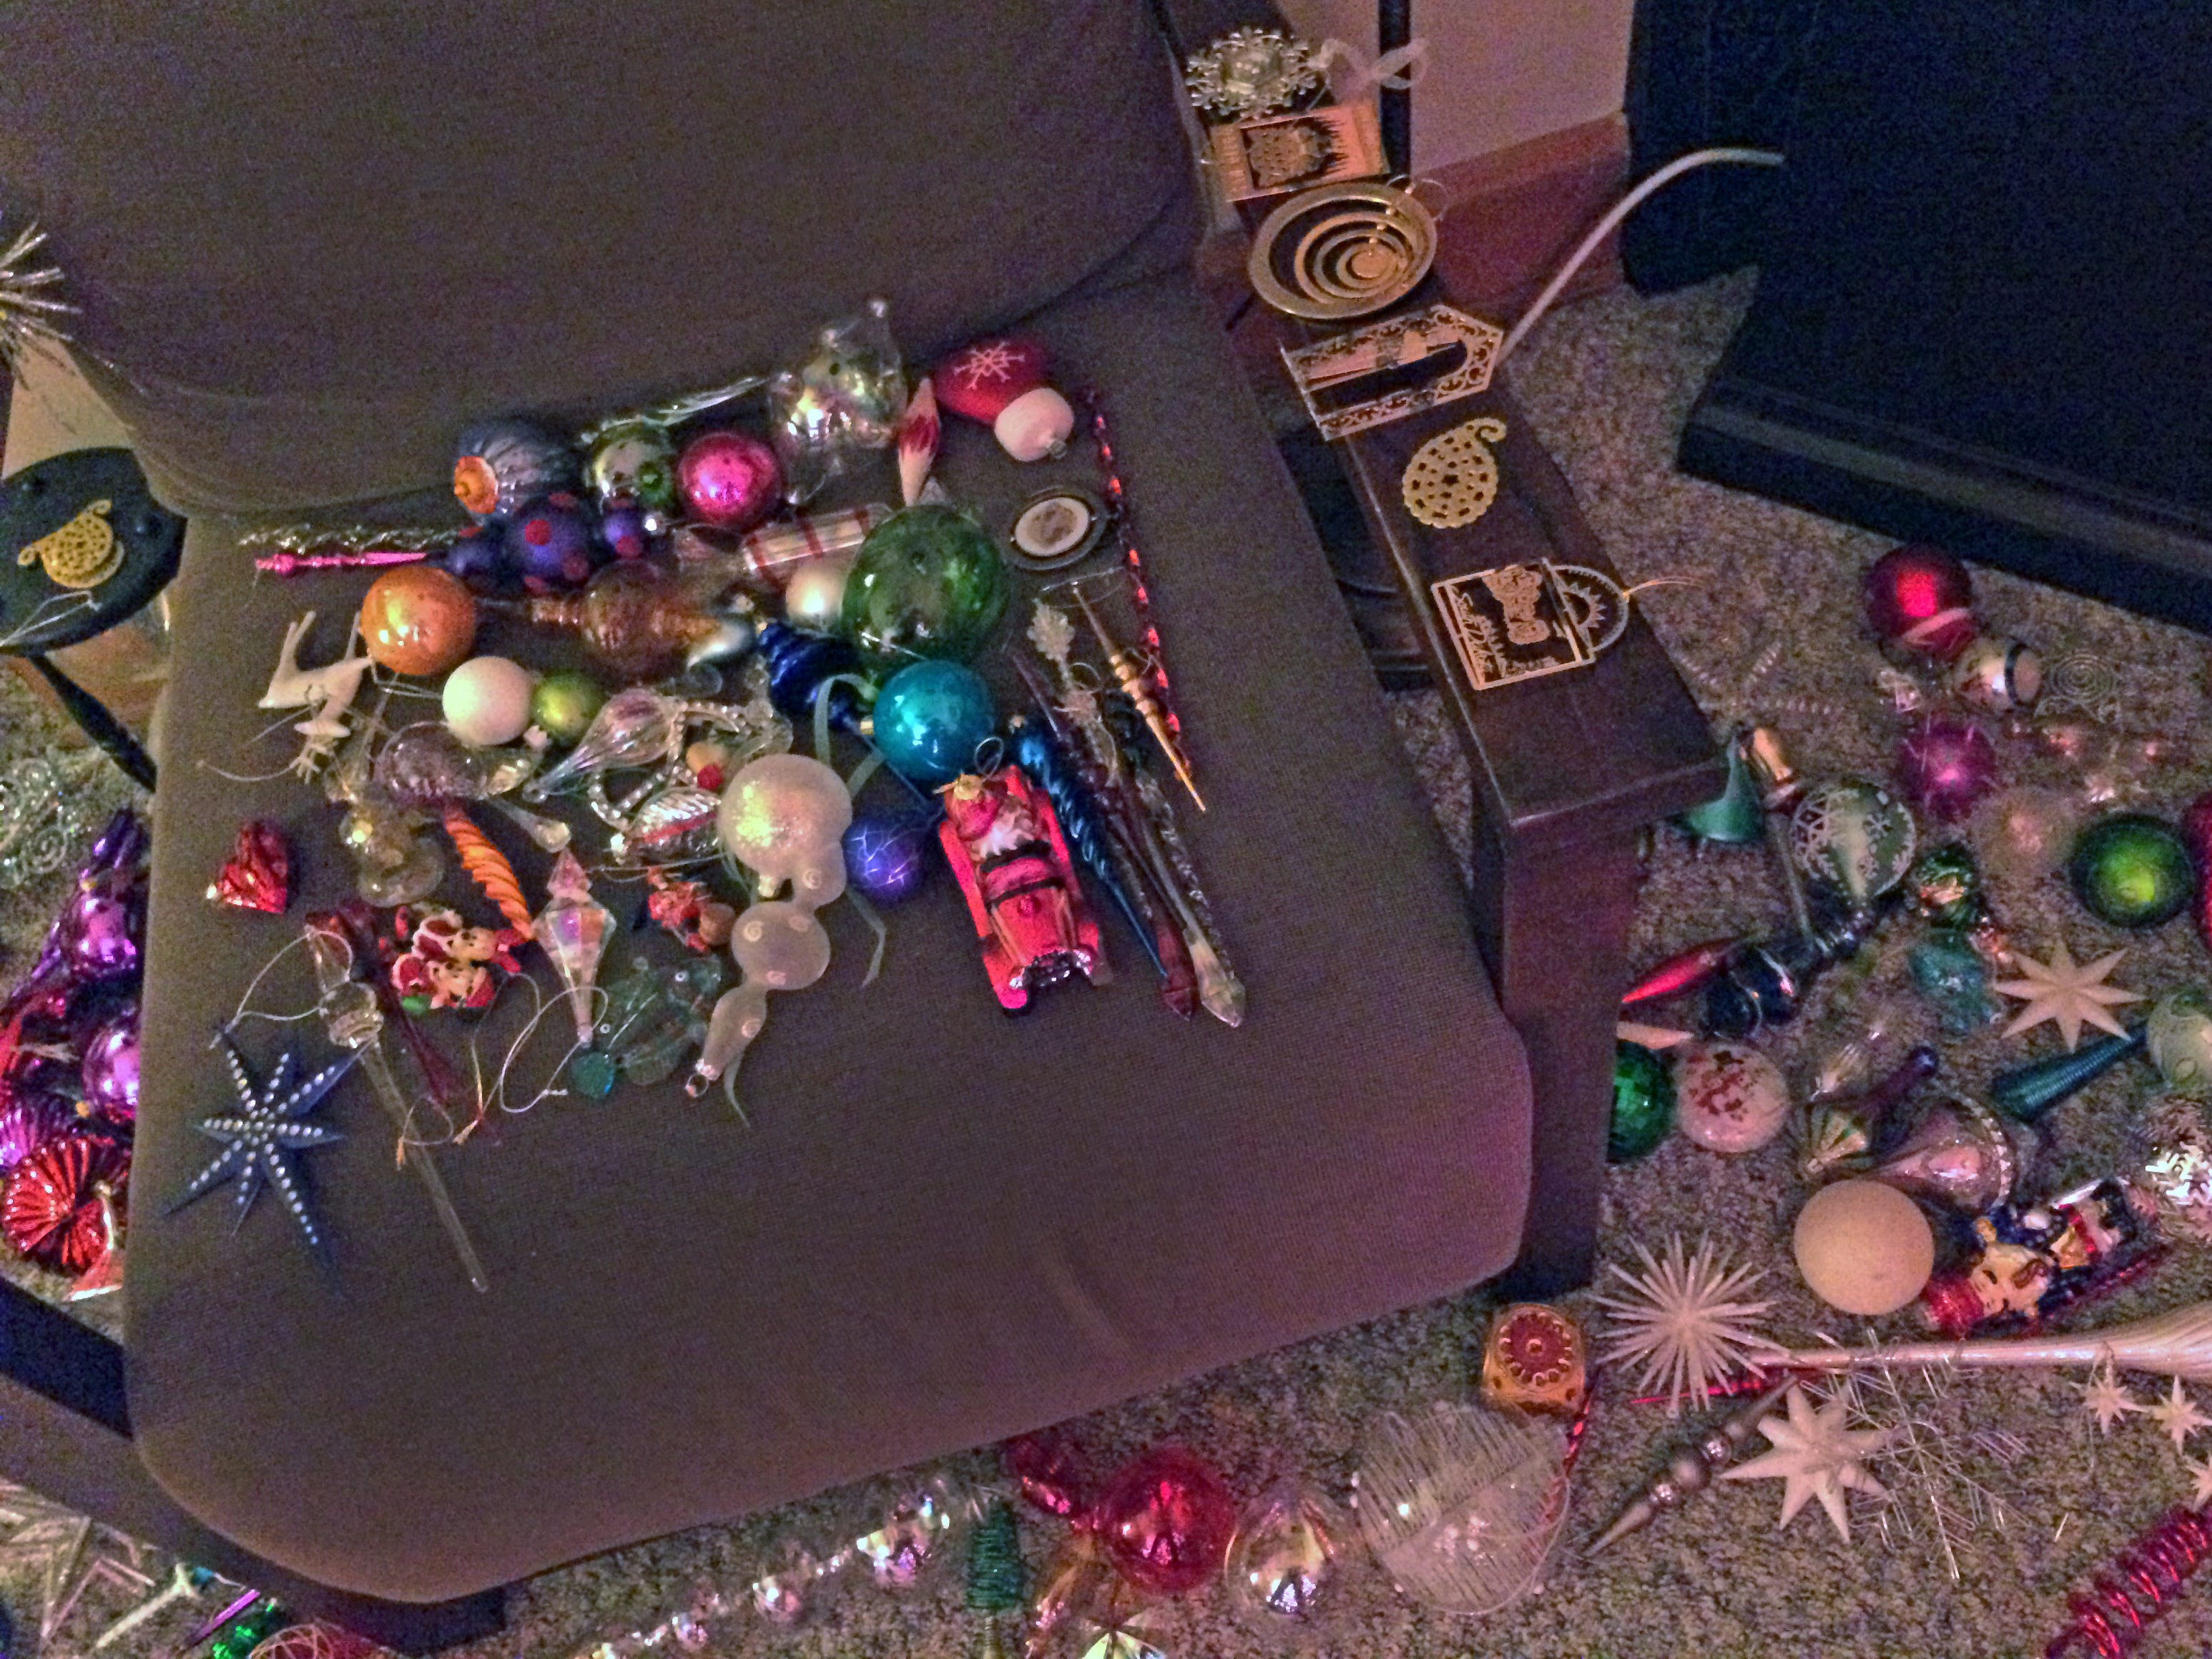 Once the lights are on Kim Harrison's tree, her 1,000 or so ornaments are spread out around the room. She estimates that it takes her more than 20 hours to hang all of the ornaments.